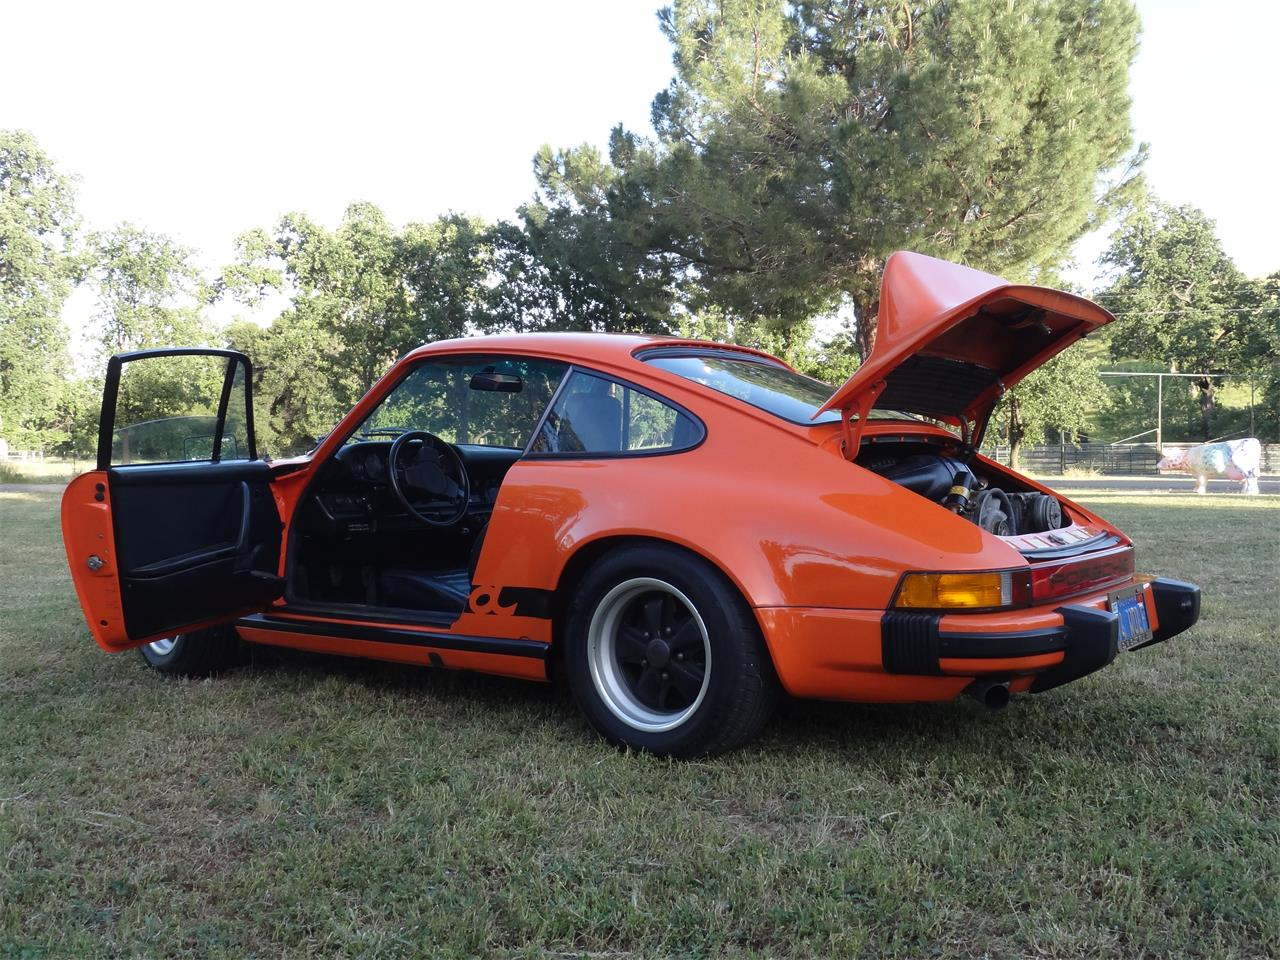 Large Picture of '74 911 Carrera 2.7 located in Red Bluff California - $118,000.00 Offered by a Private Seller - MBFF